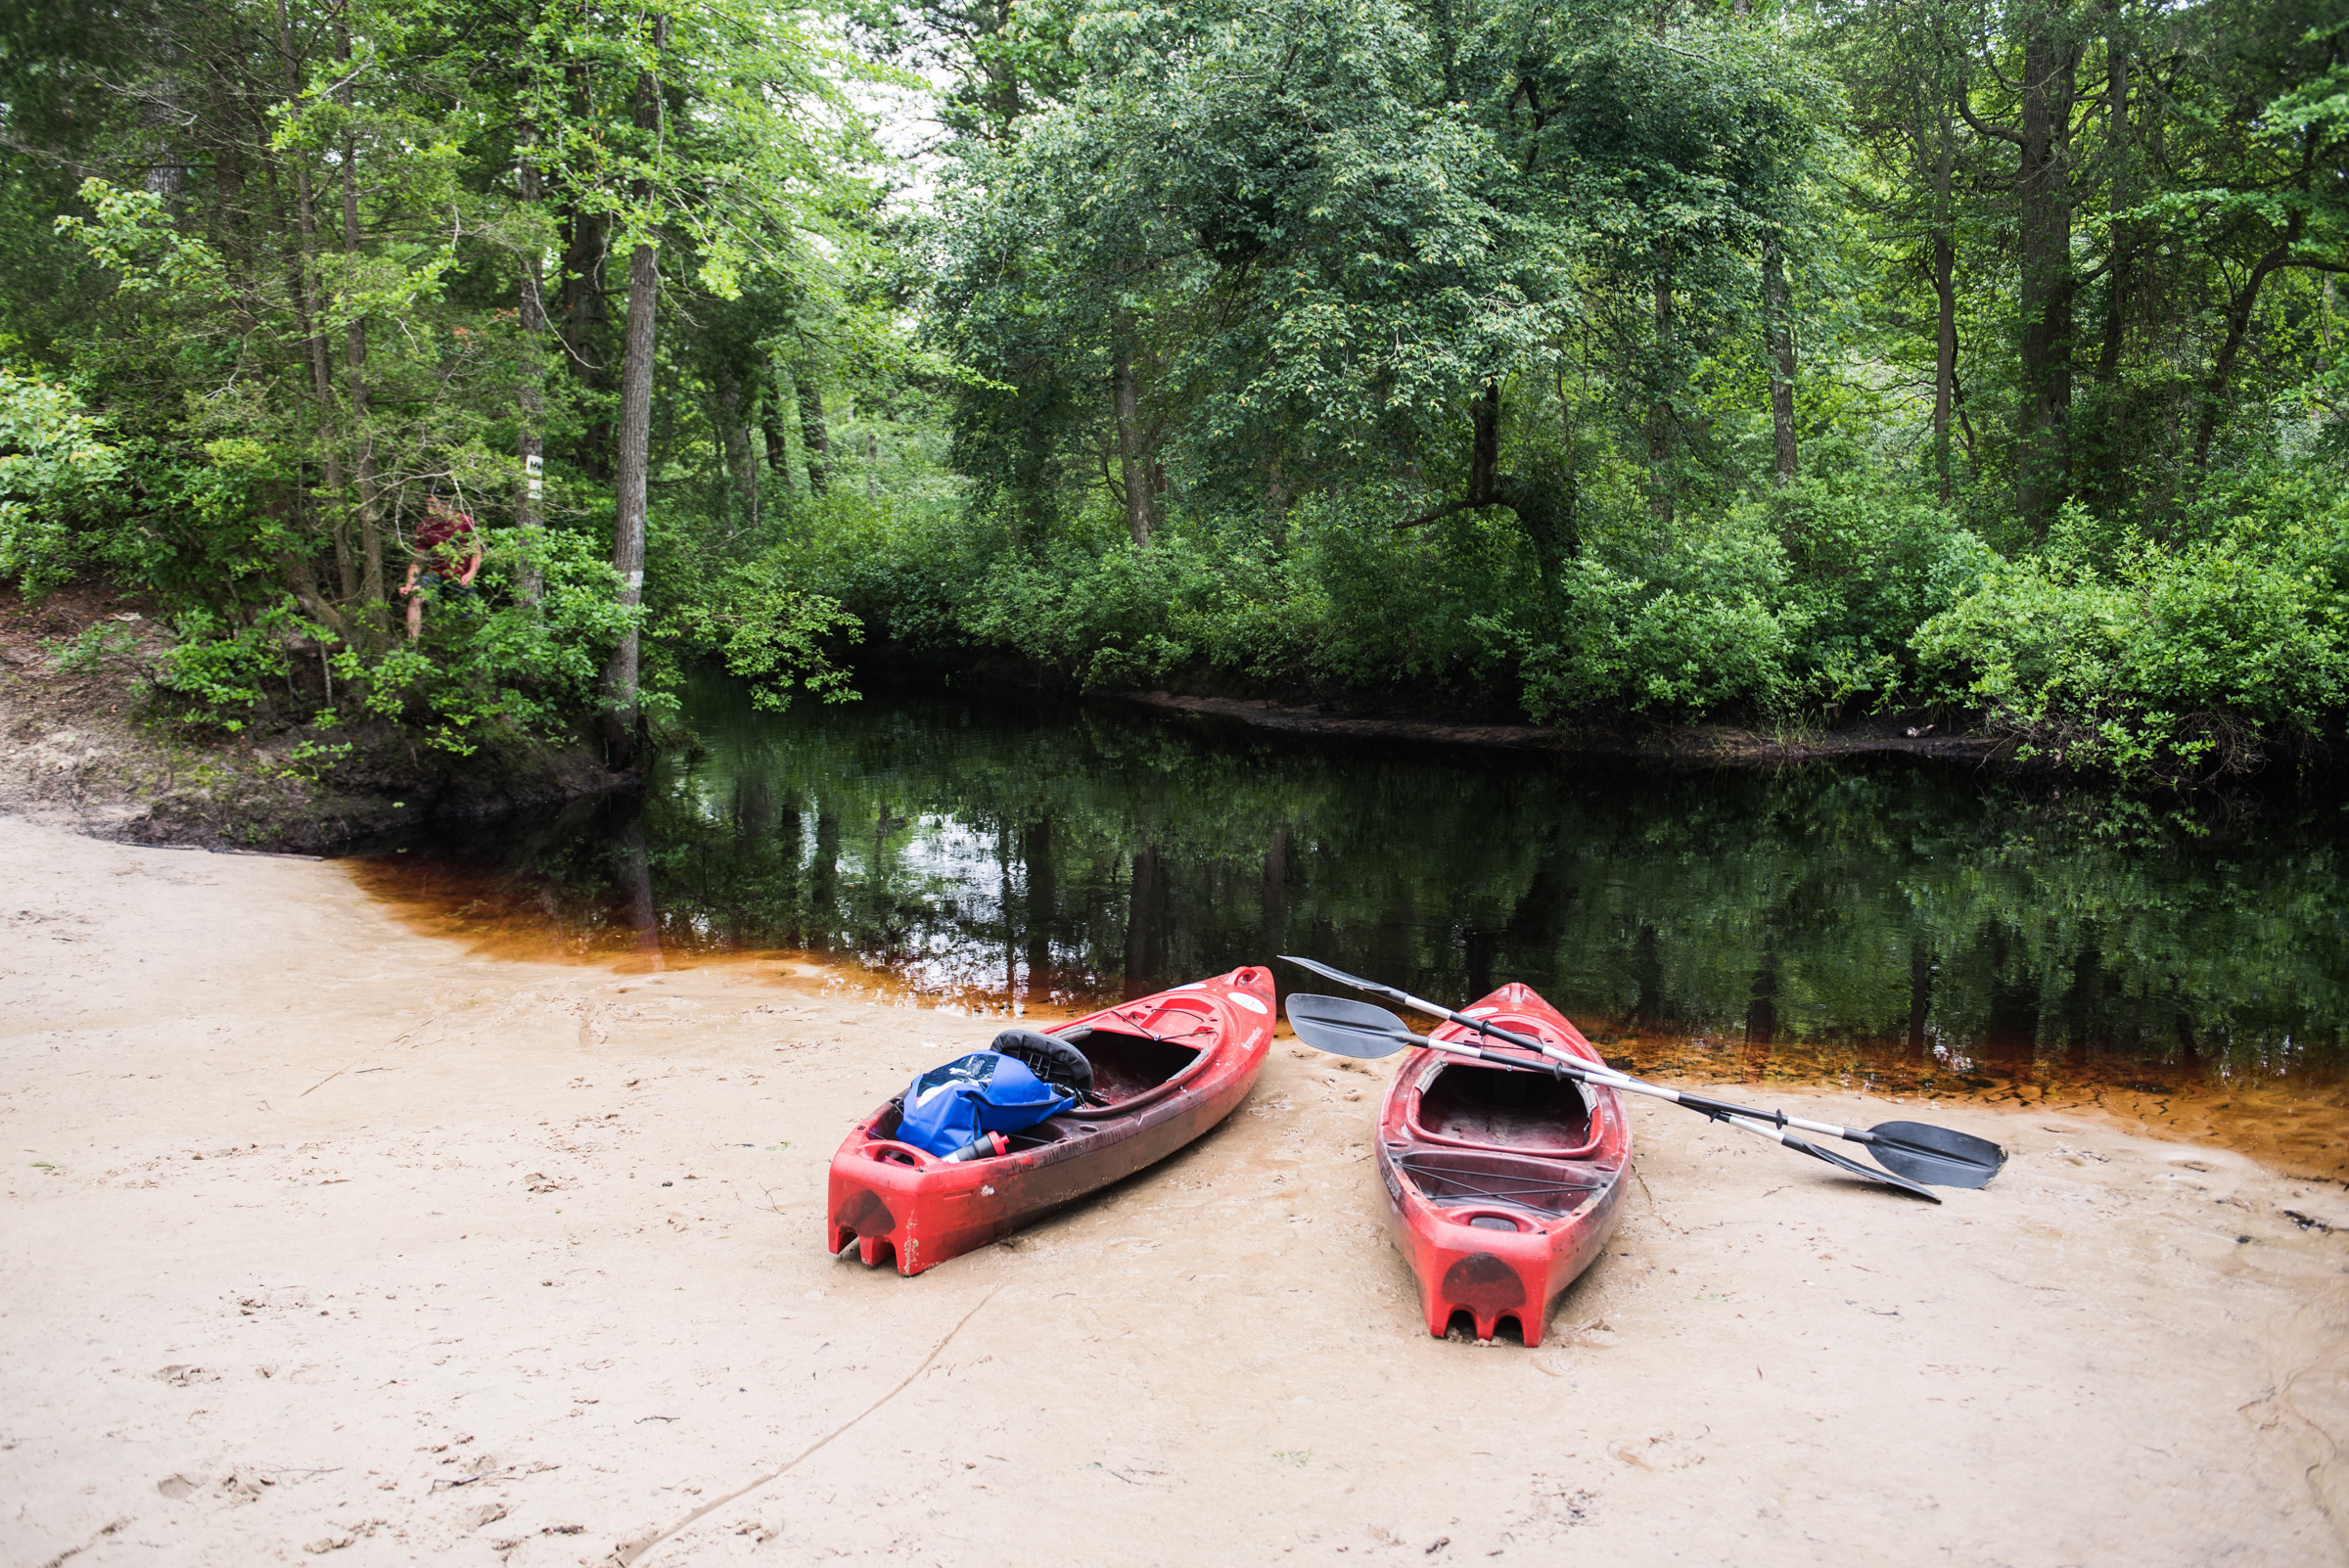 In the Pine Barrens, where a variety of calm waterways for canoeing and kayaking exist, the water takes on a rich red hue from tannins and acids leached from cedar trees, coupled with a naturally high iron content of surrounding soils.